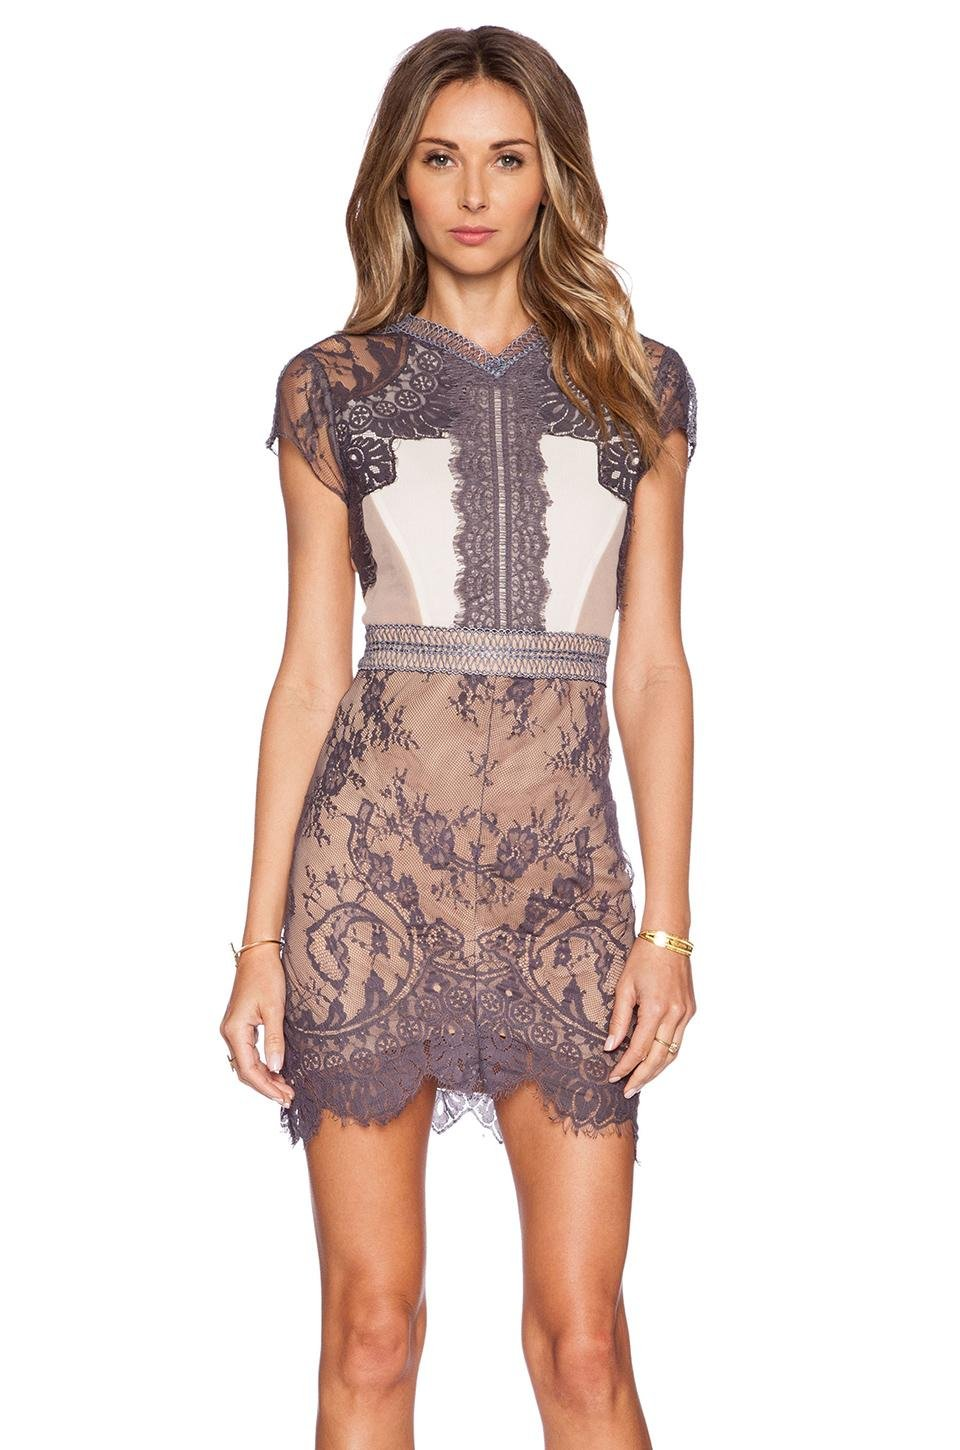 Floral Lace Bodice New Fashion M-XL Size Sexy Dress For Women With V-neck Back W850632